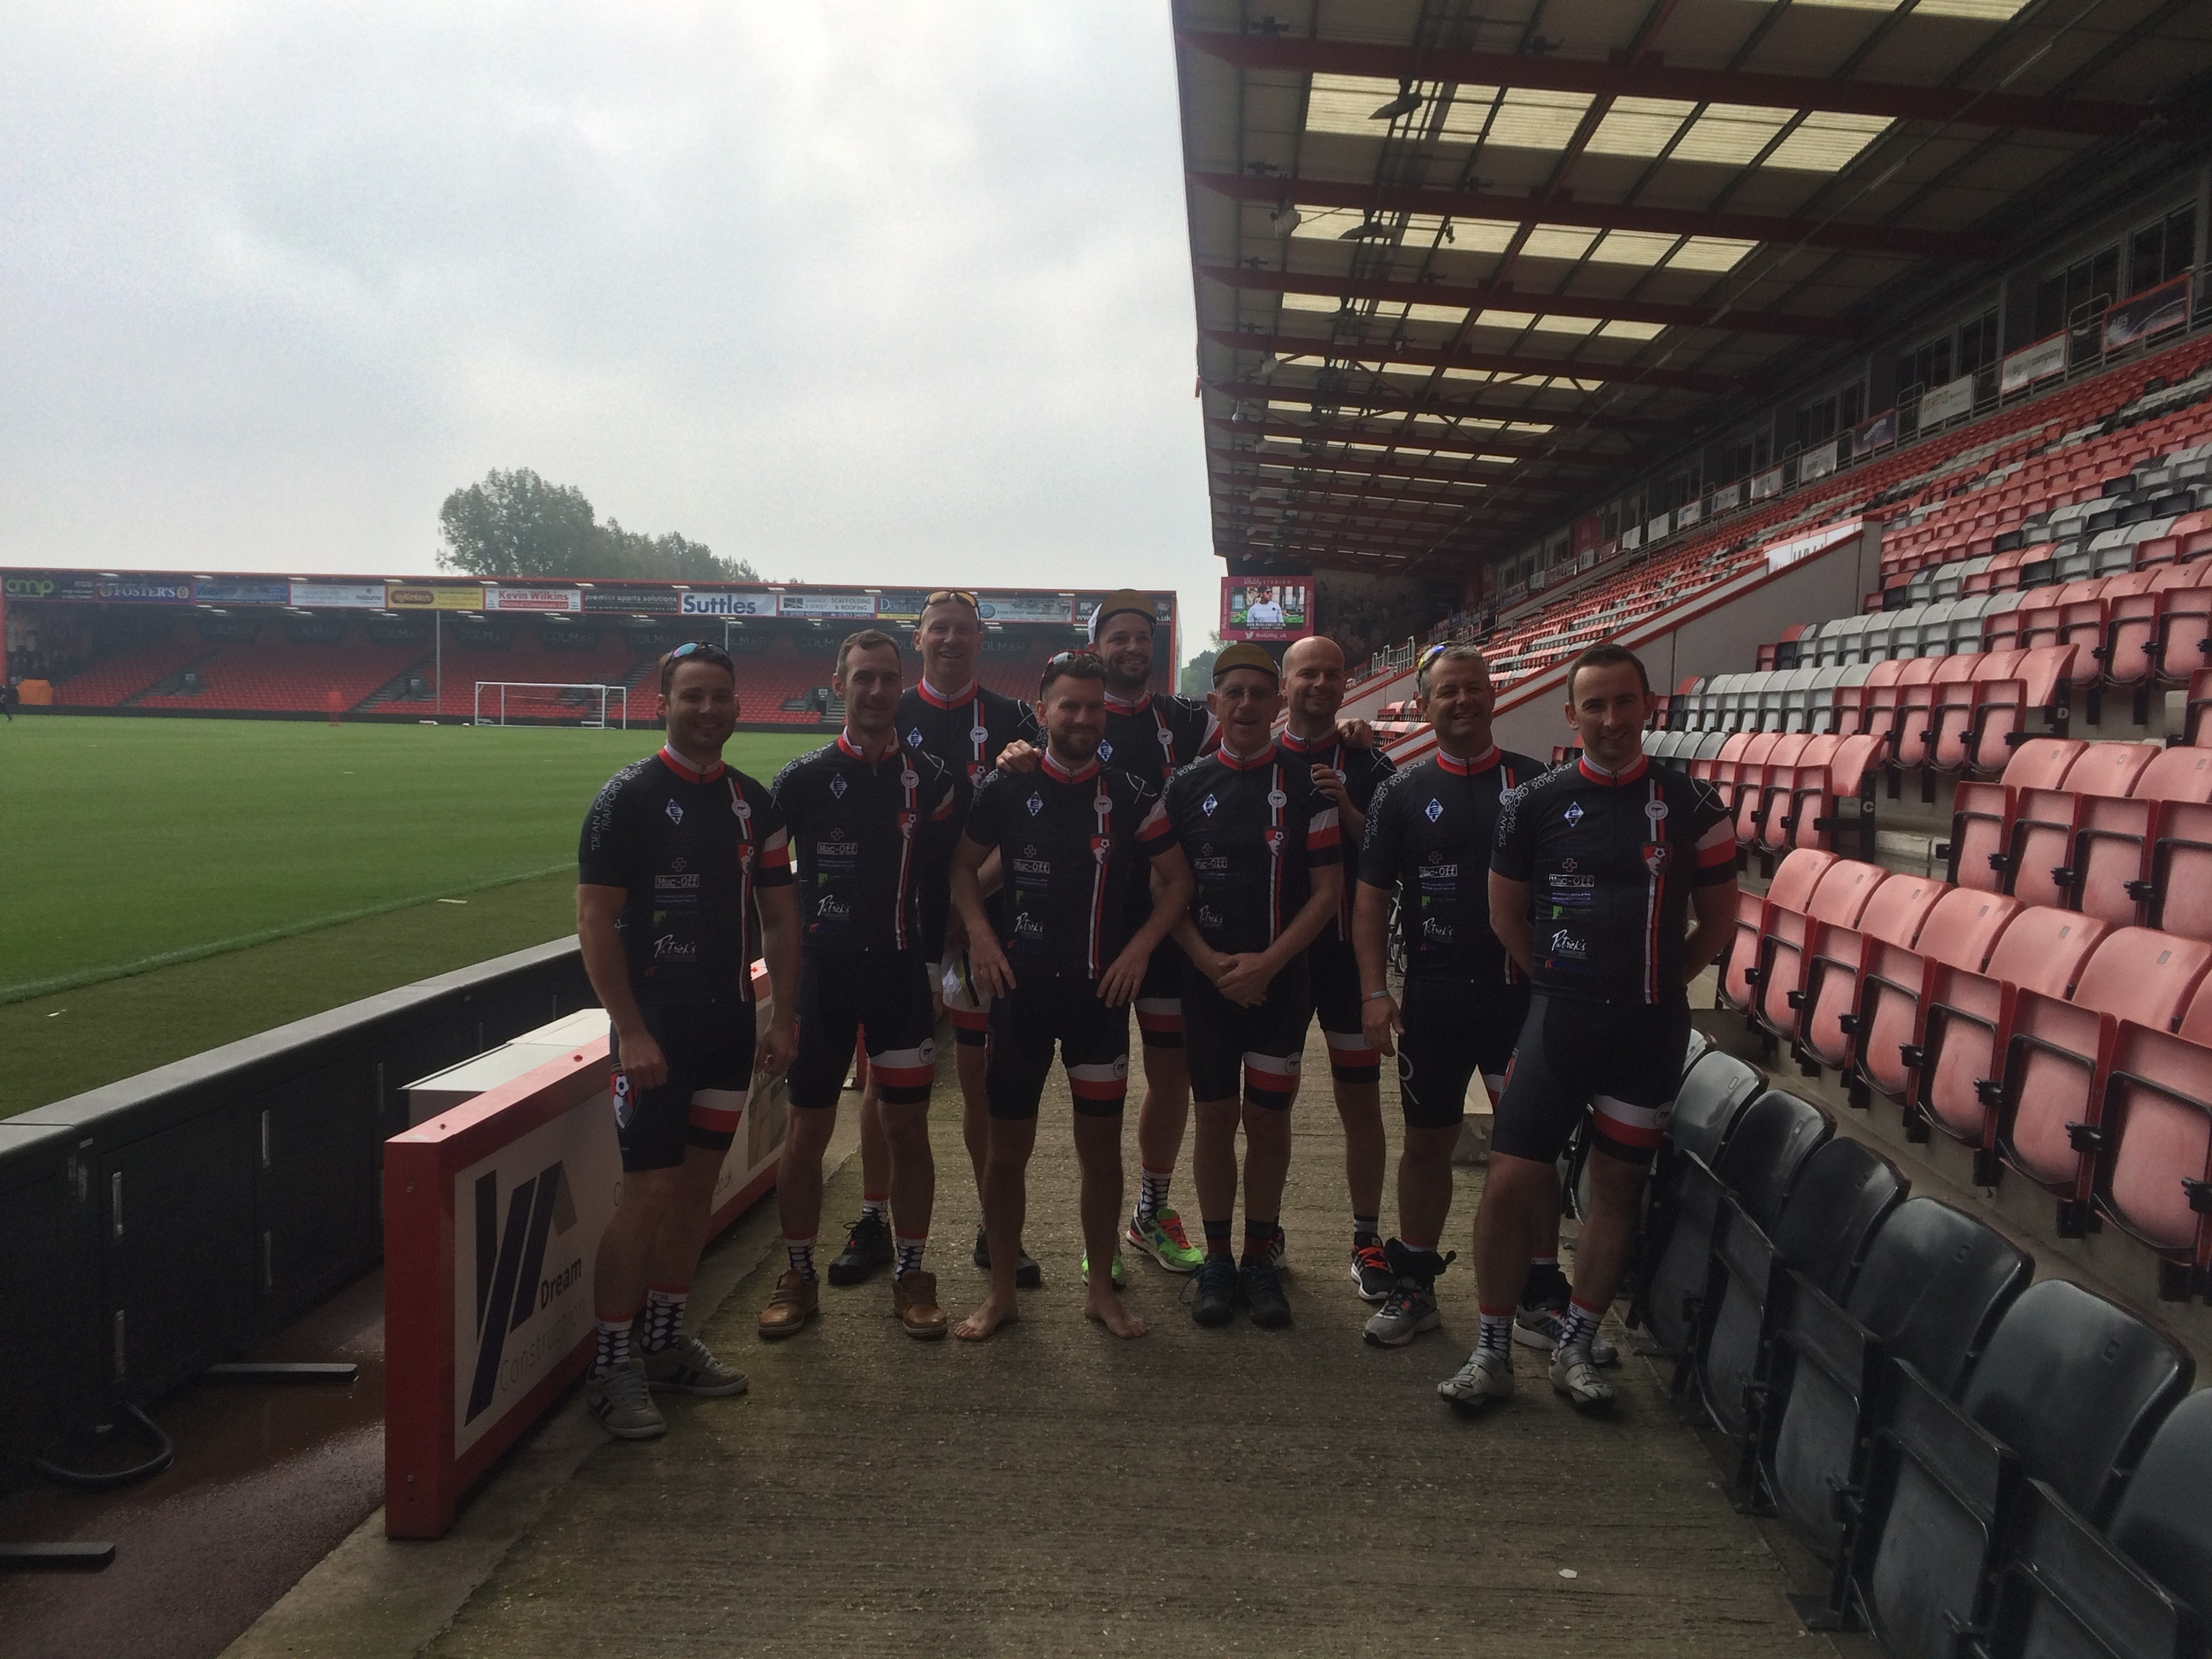 At Dean Court posing for the Media.